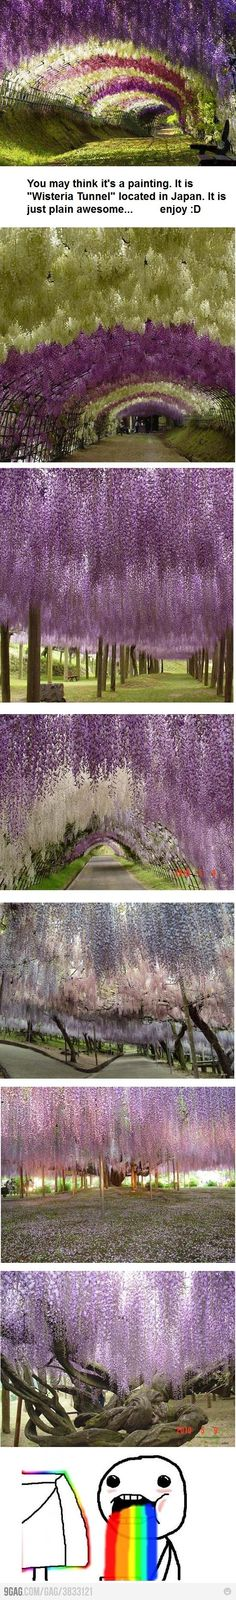 Wisteria Tunnel - Japan